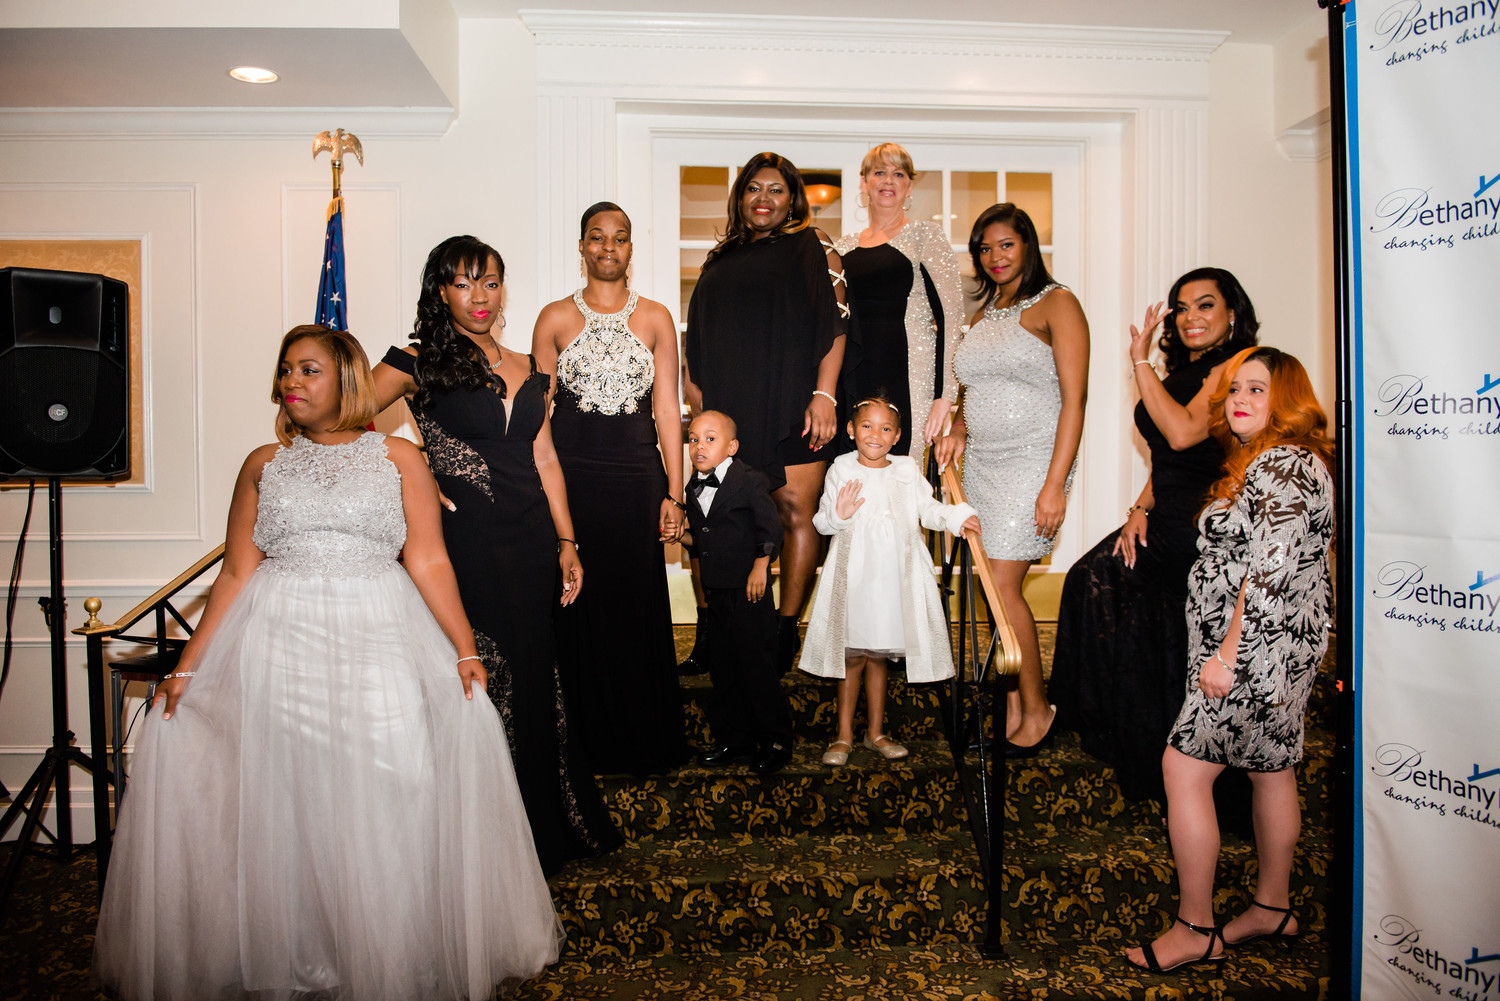 Members of the Bethany House were dressed to the nines at the 17th annual fashion show and awards dinner on Oct. 17.